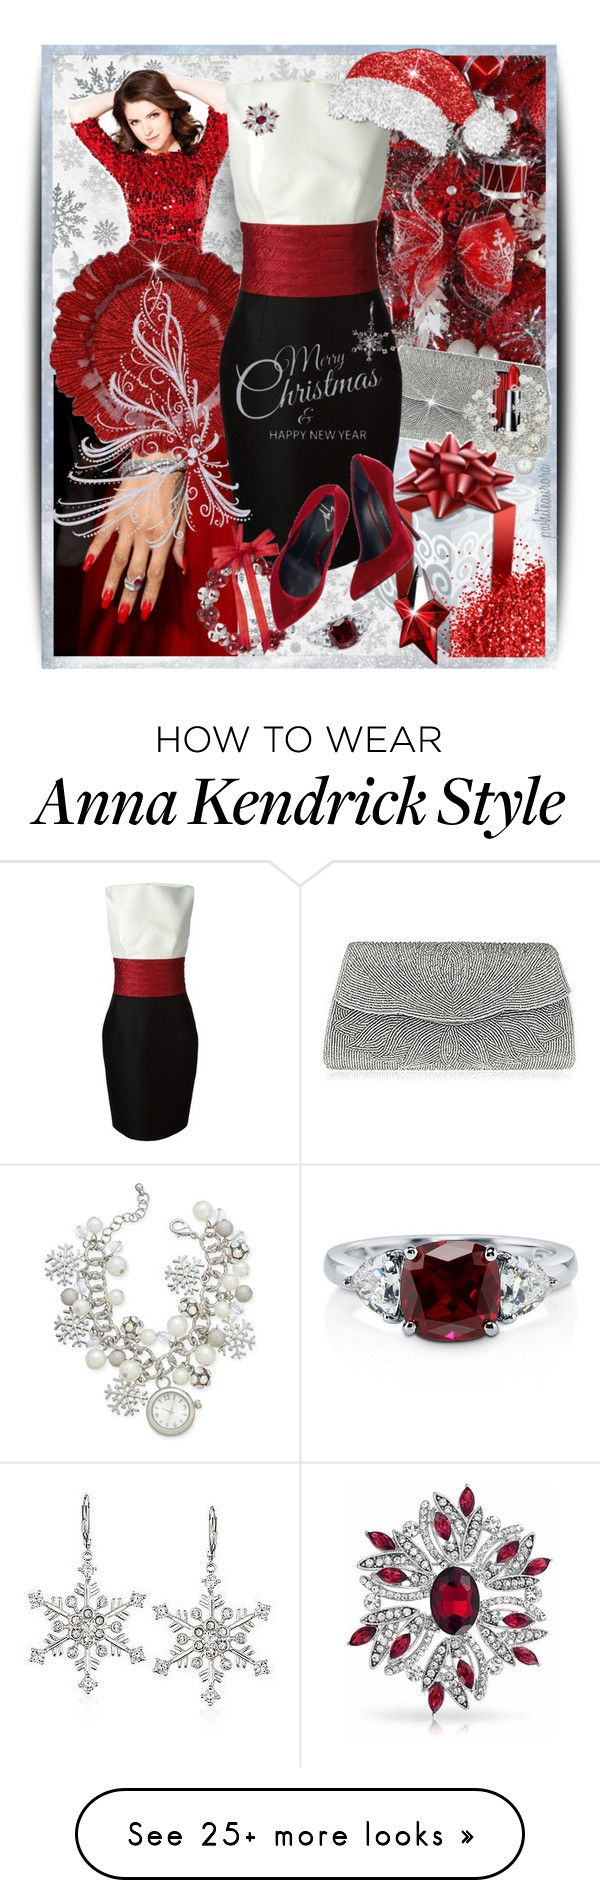 """""""Merry Christmas & Happy New Year!"""" by pwhiteaurora on Polyvore featuring Kaisercraft, Nina, Dsquared2, Lord & Taylor, Giuseppe Zanotti, Ross-Simons, Charter Club, Thierry Mugler and BERRICLE"""